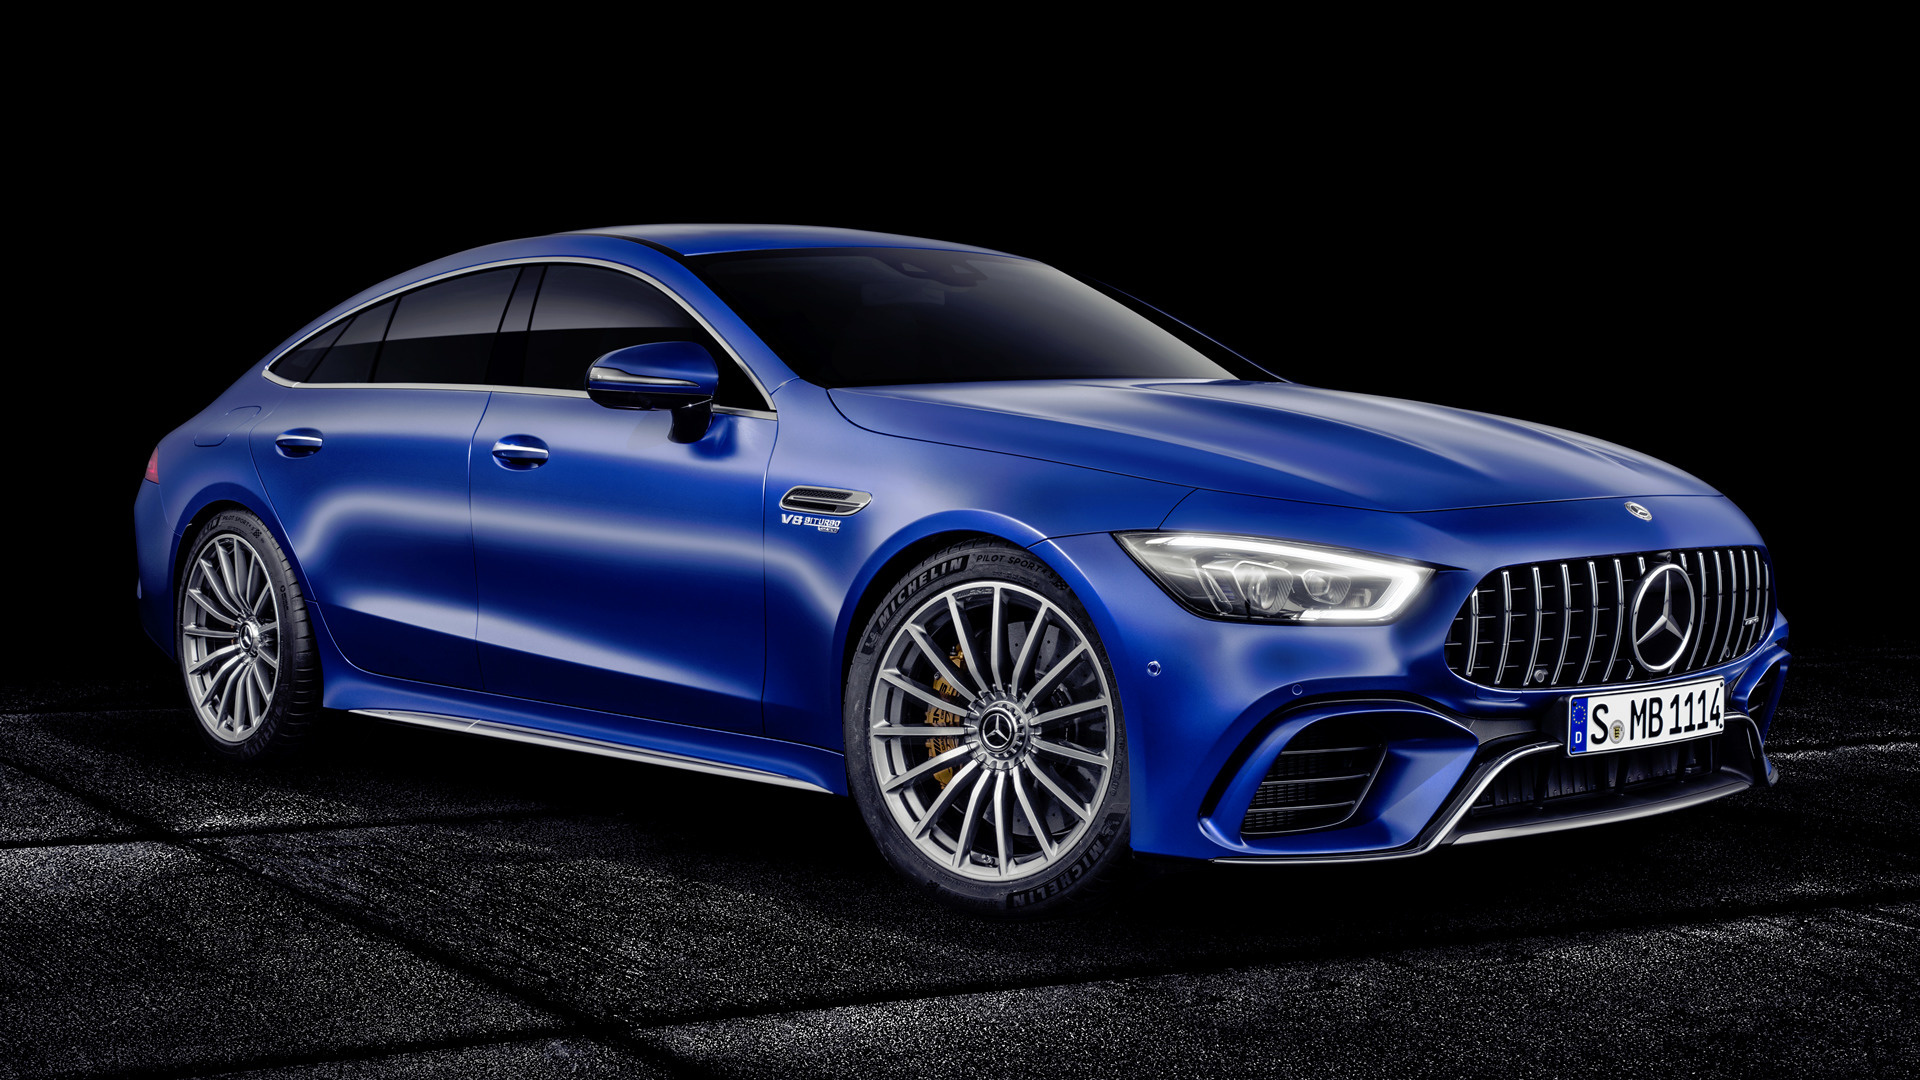 mercedes amg gt 63 s 4 door 2018 wallpapers and hd. Black Bedroom Furniture Sets. Home Design Ideas